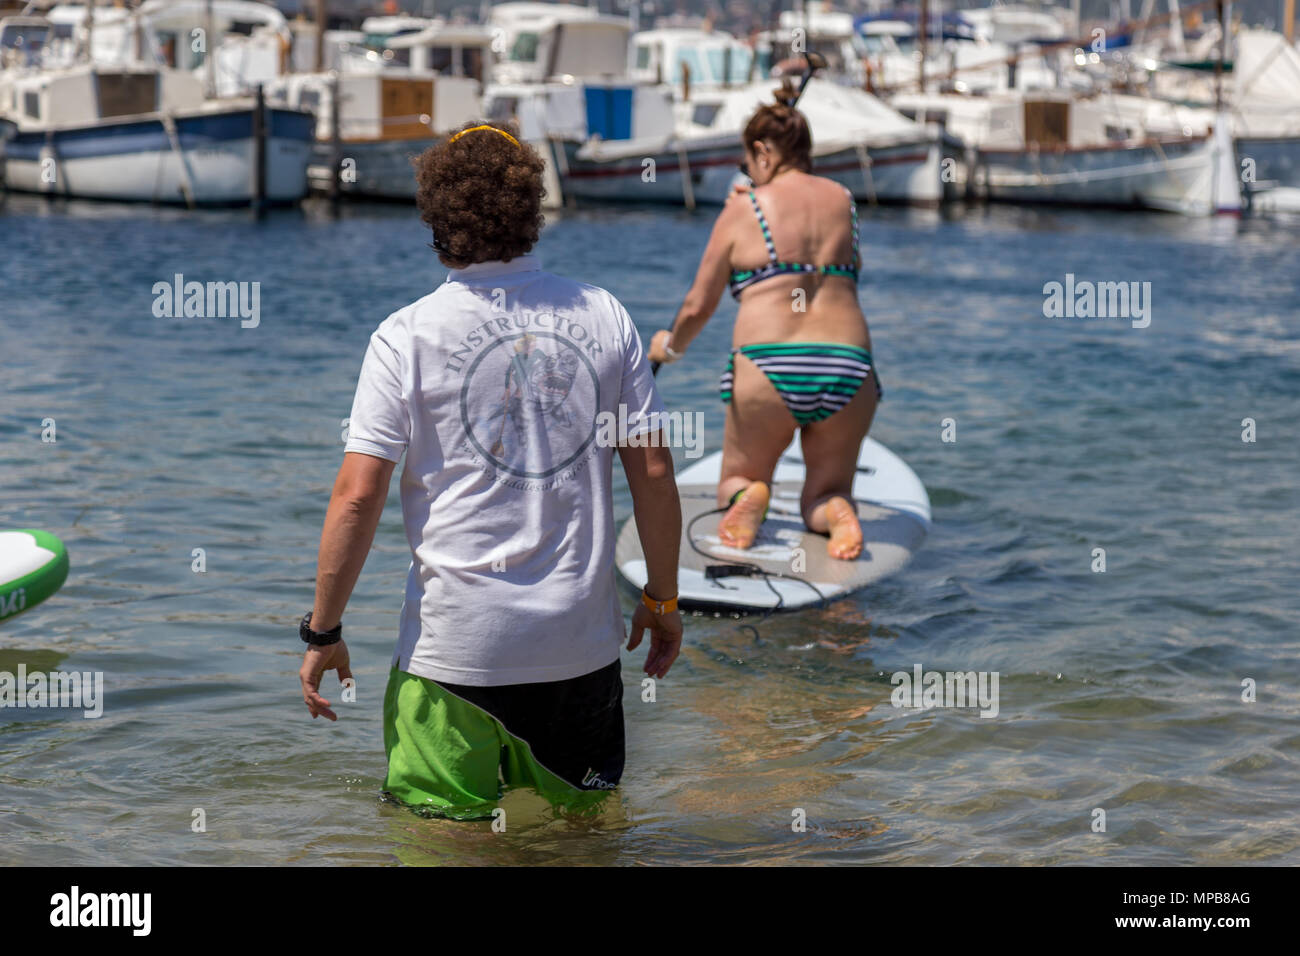 Paddle trainer on the beach in Palamos, Costa Brava. 20. 05. 2018 Spain - Stock Image